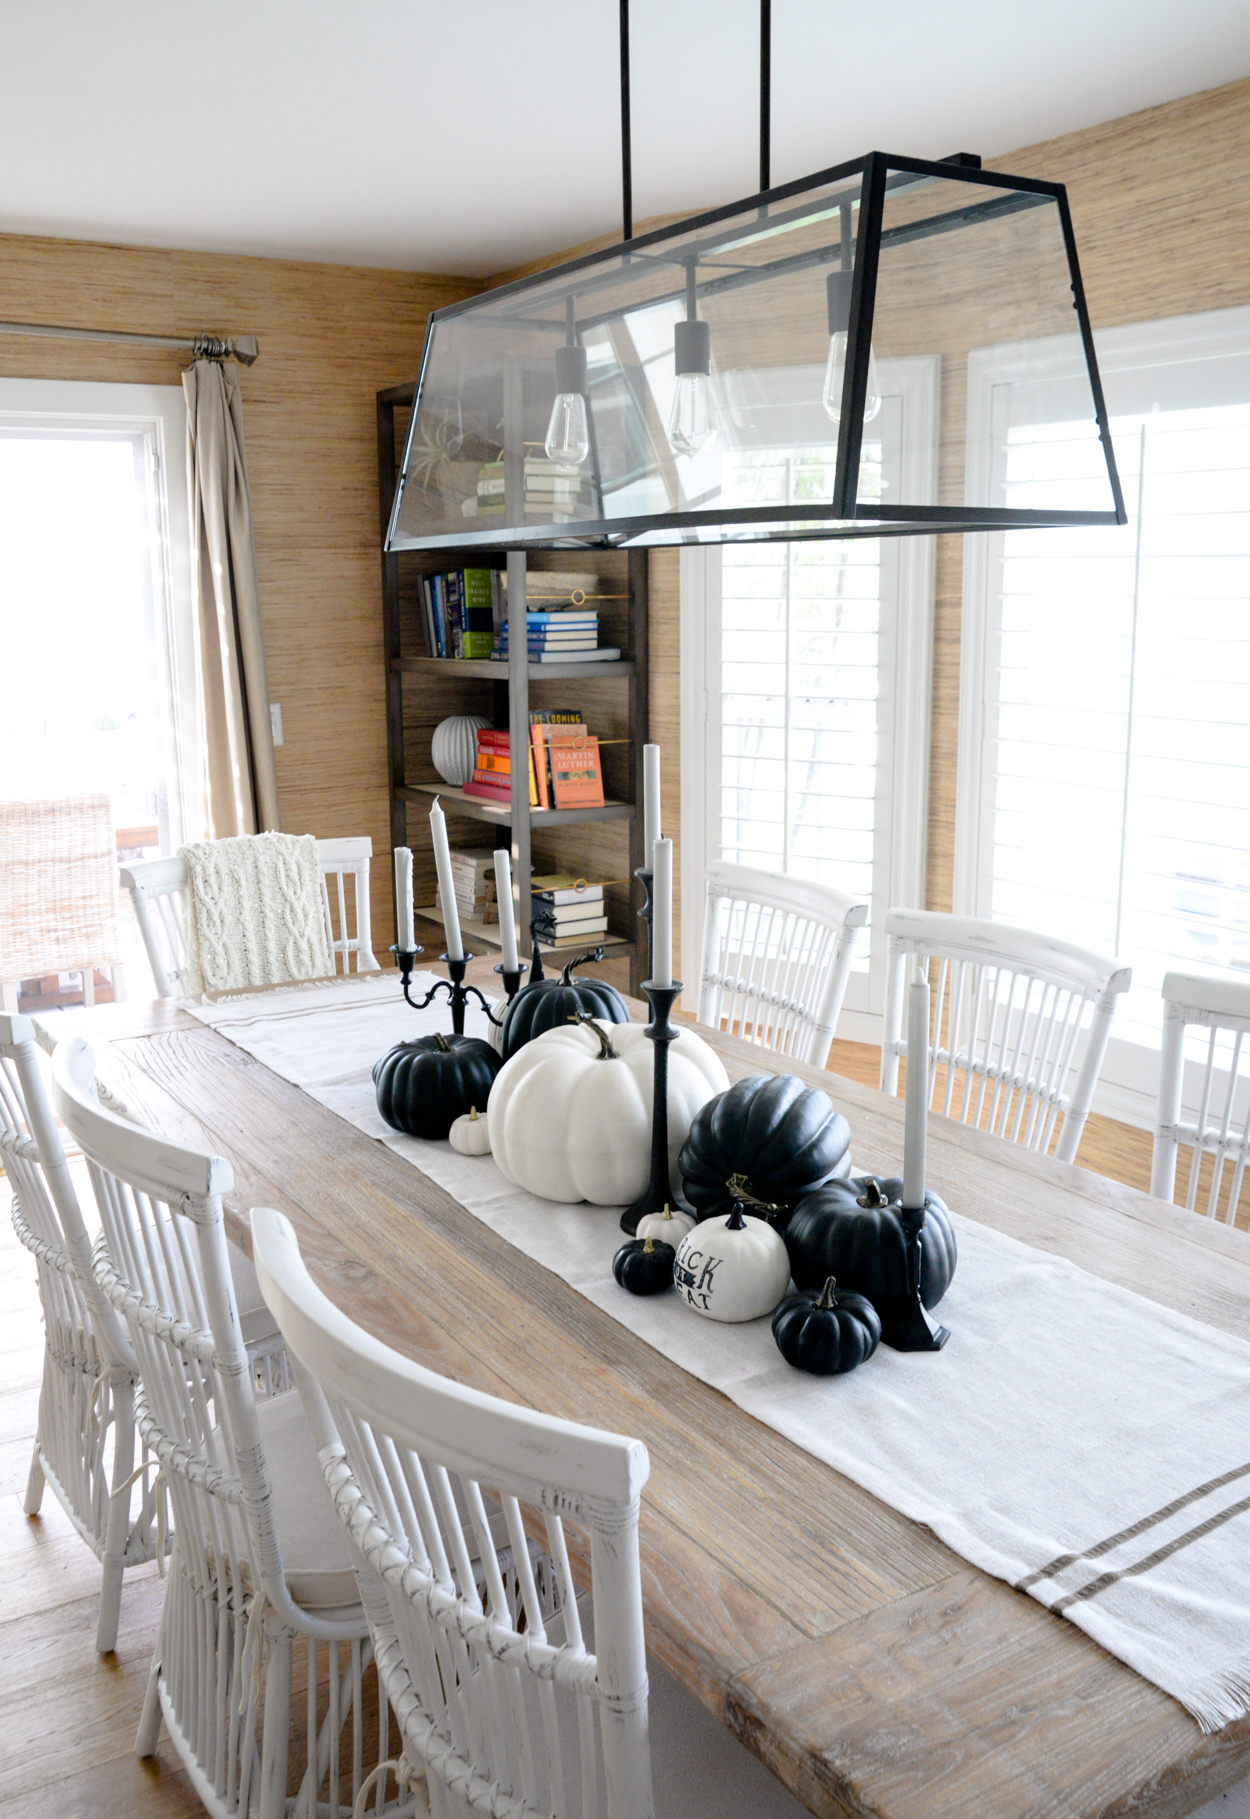 Black and white pumpkins sitting on a rustic wood dining table with white chairs and black candlesticks